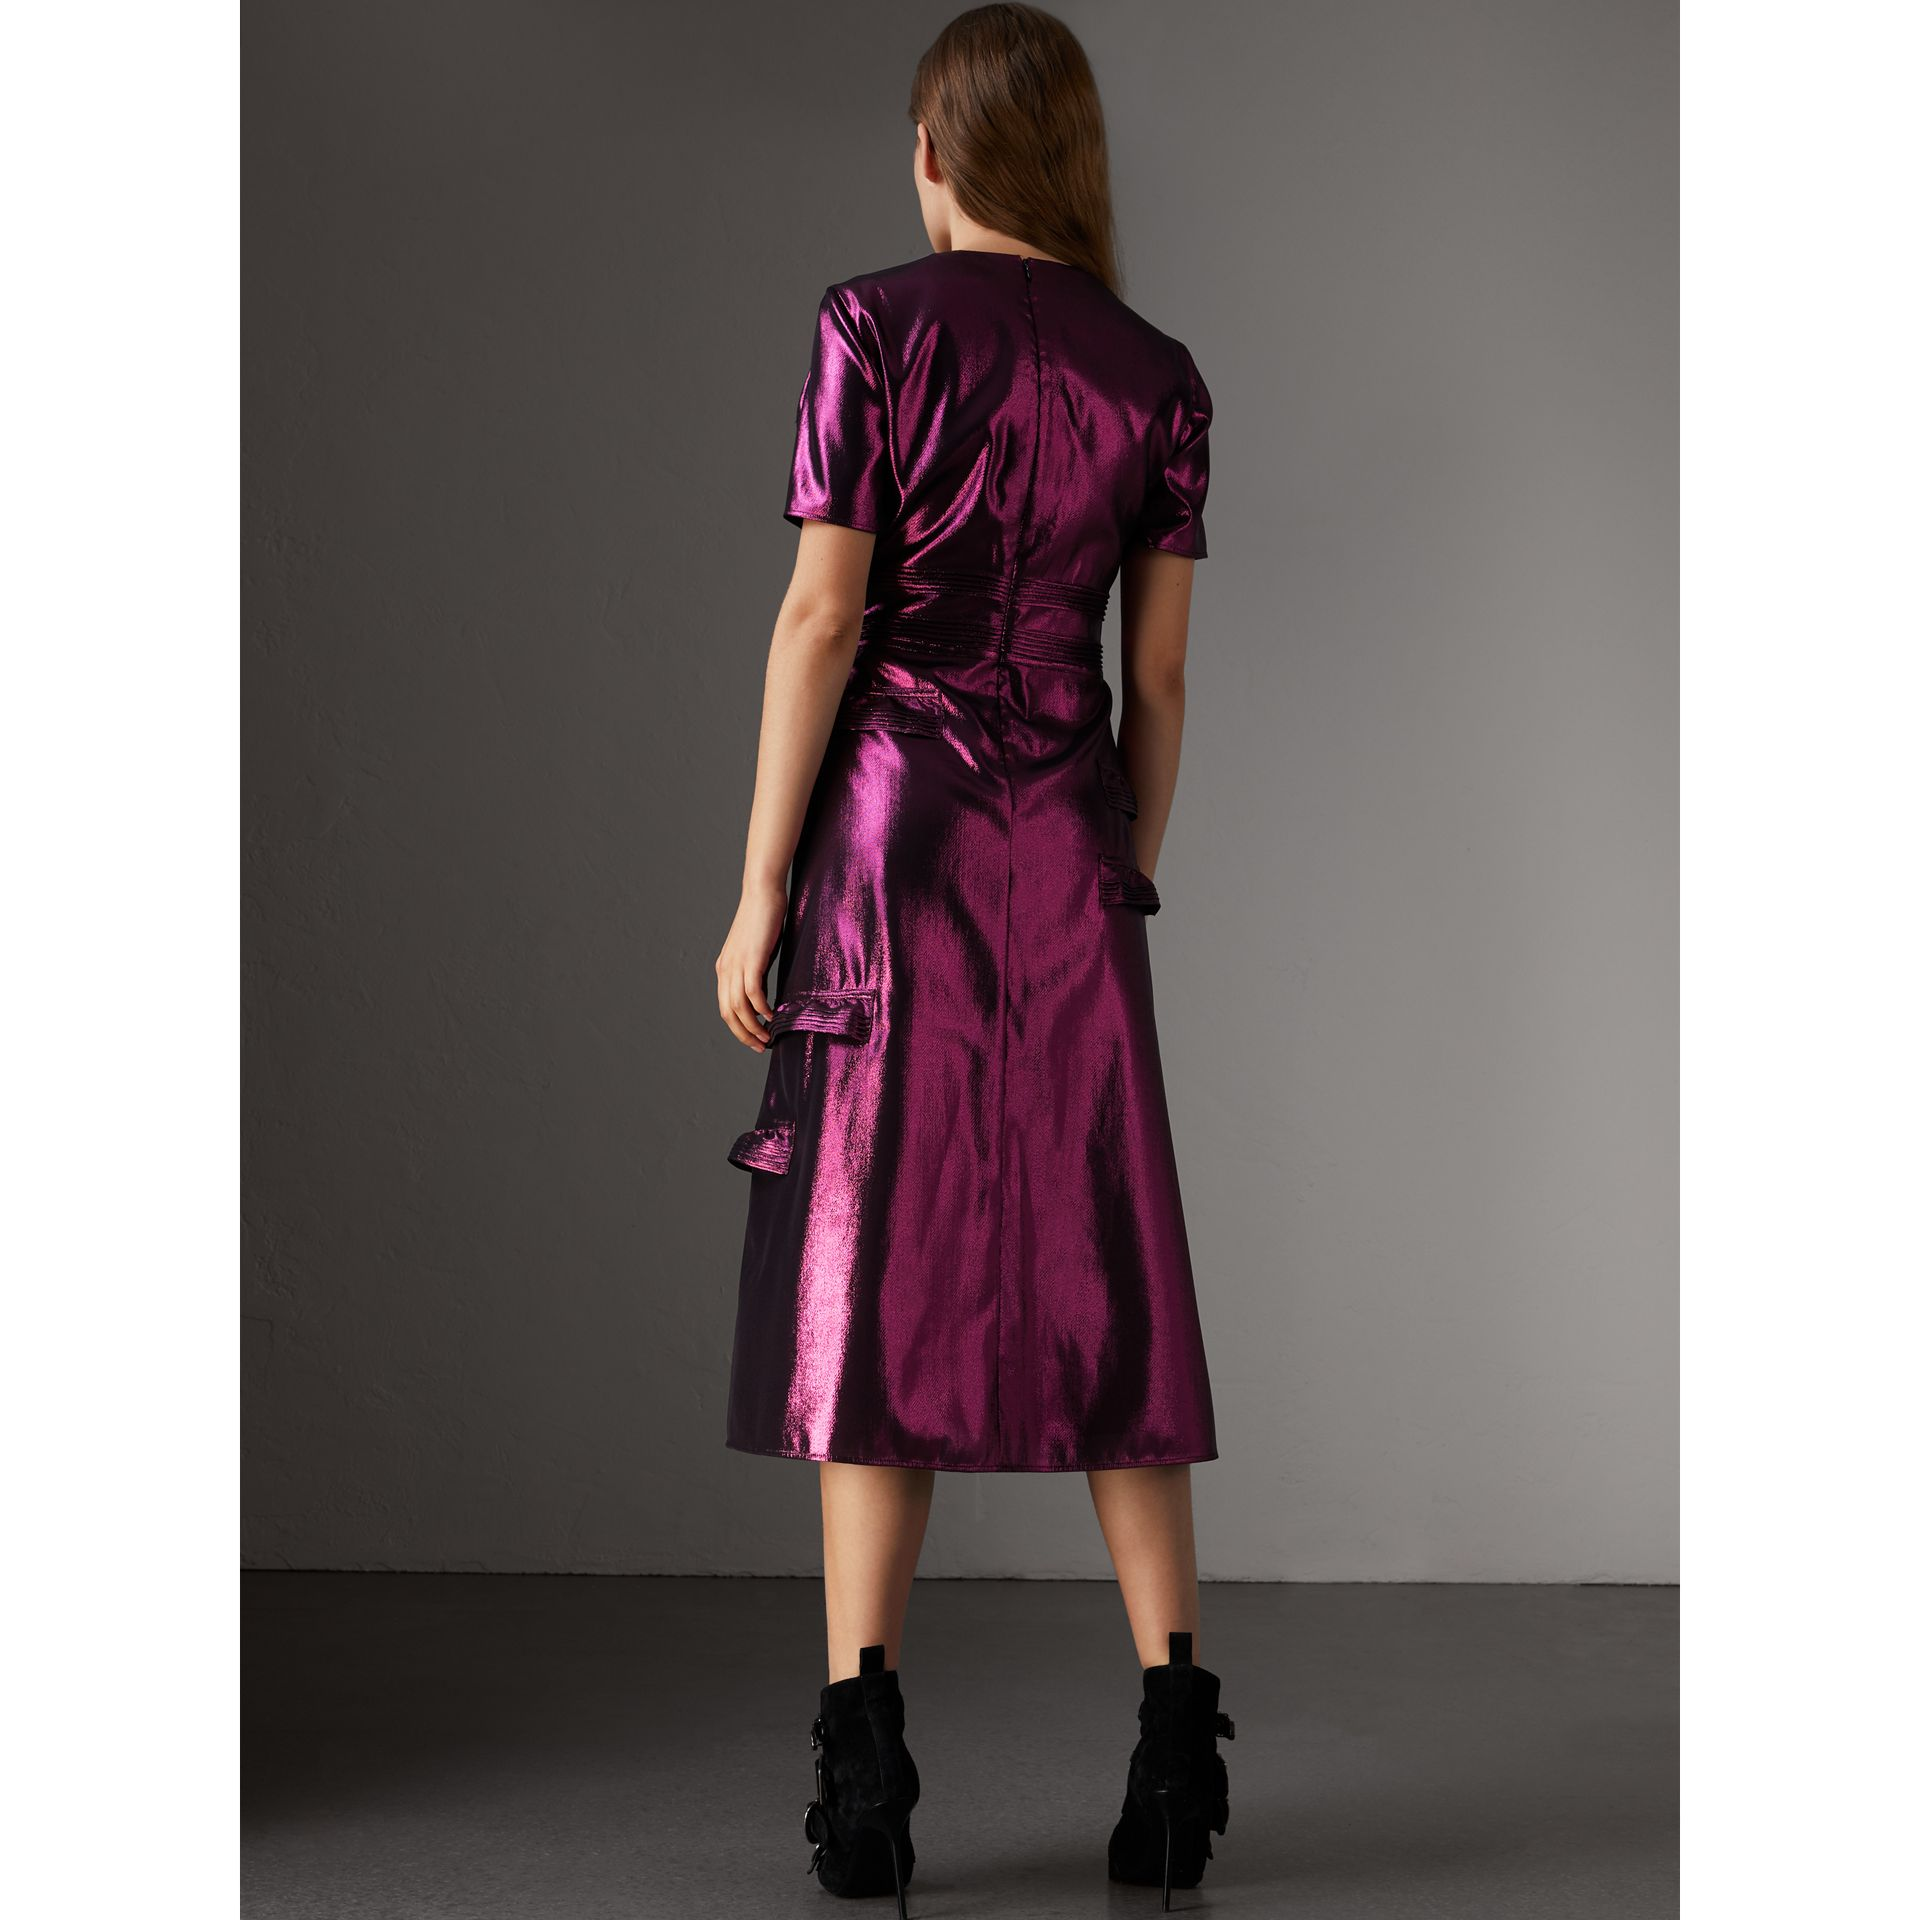 Short-sleeve Ruffle Detail Lamé Dress – Online Exclusive in Bright Fuchsia - Women | Burberry - gallery image 3